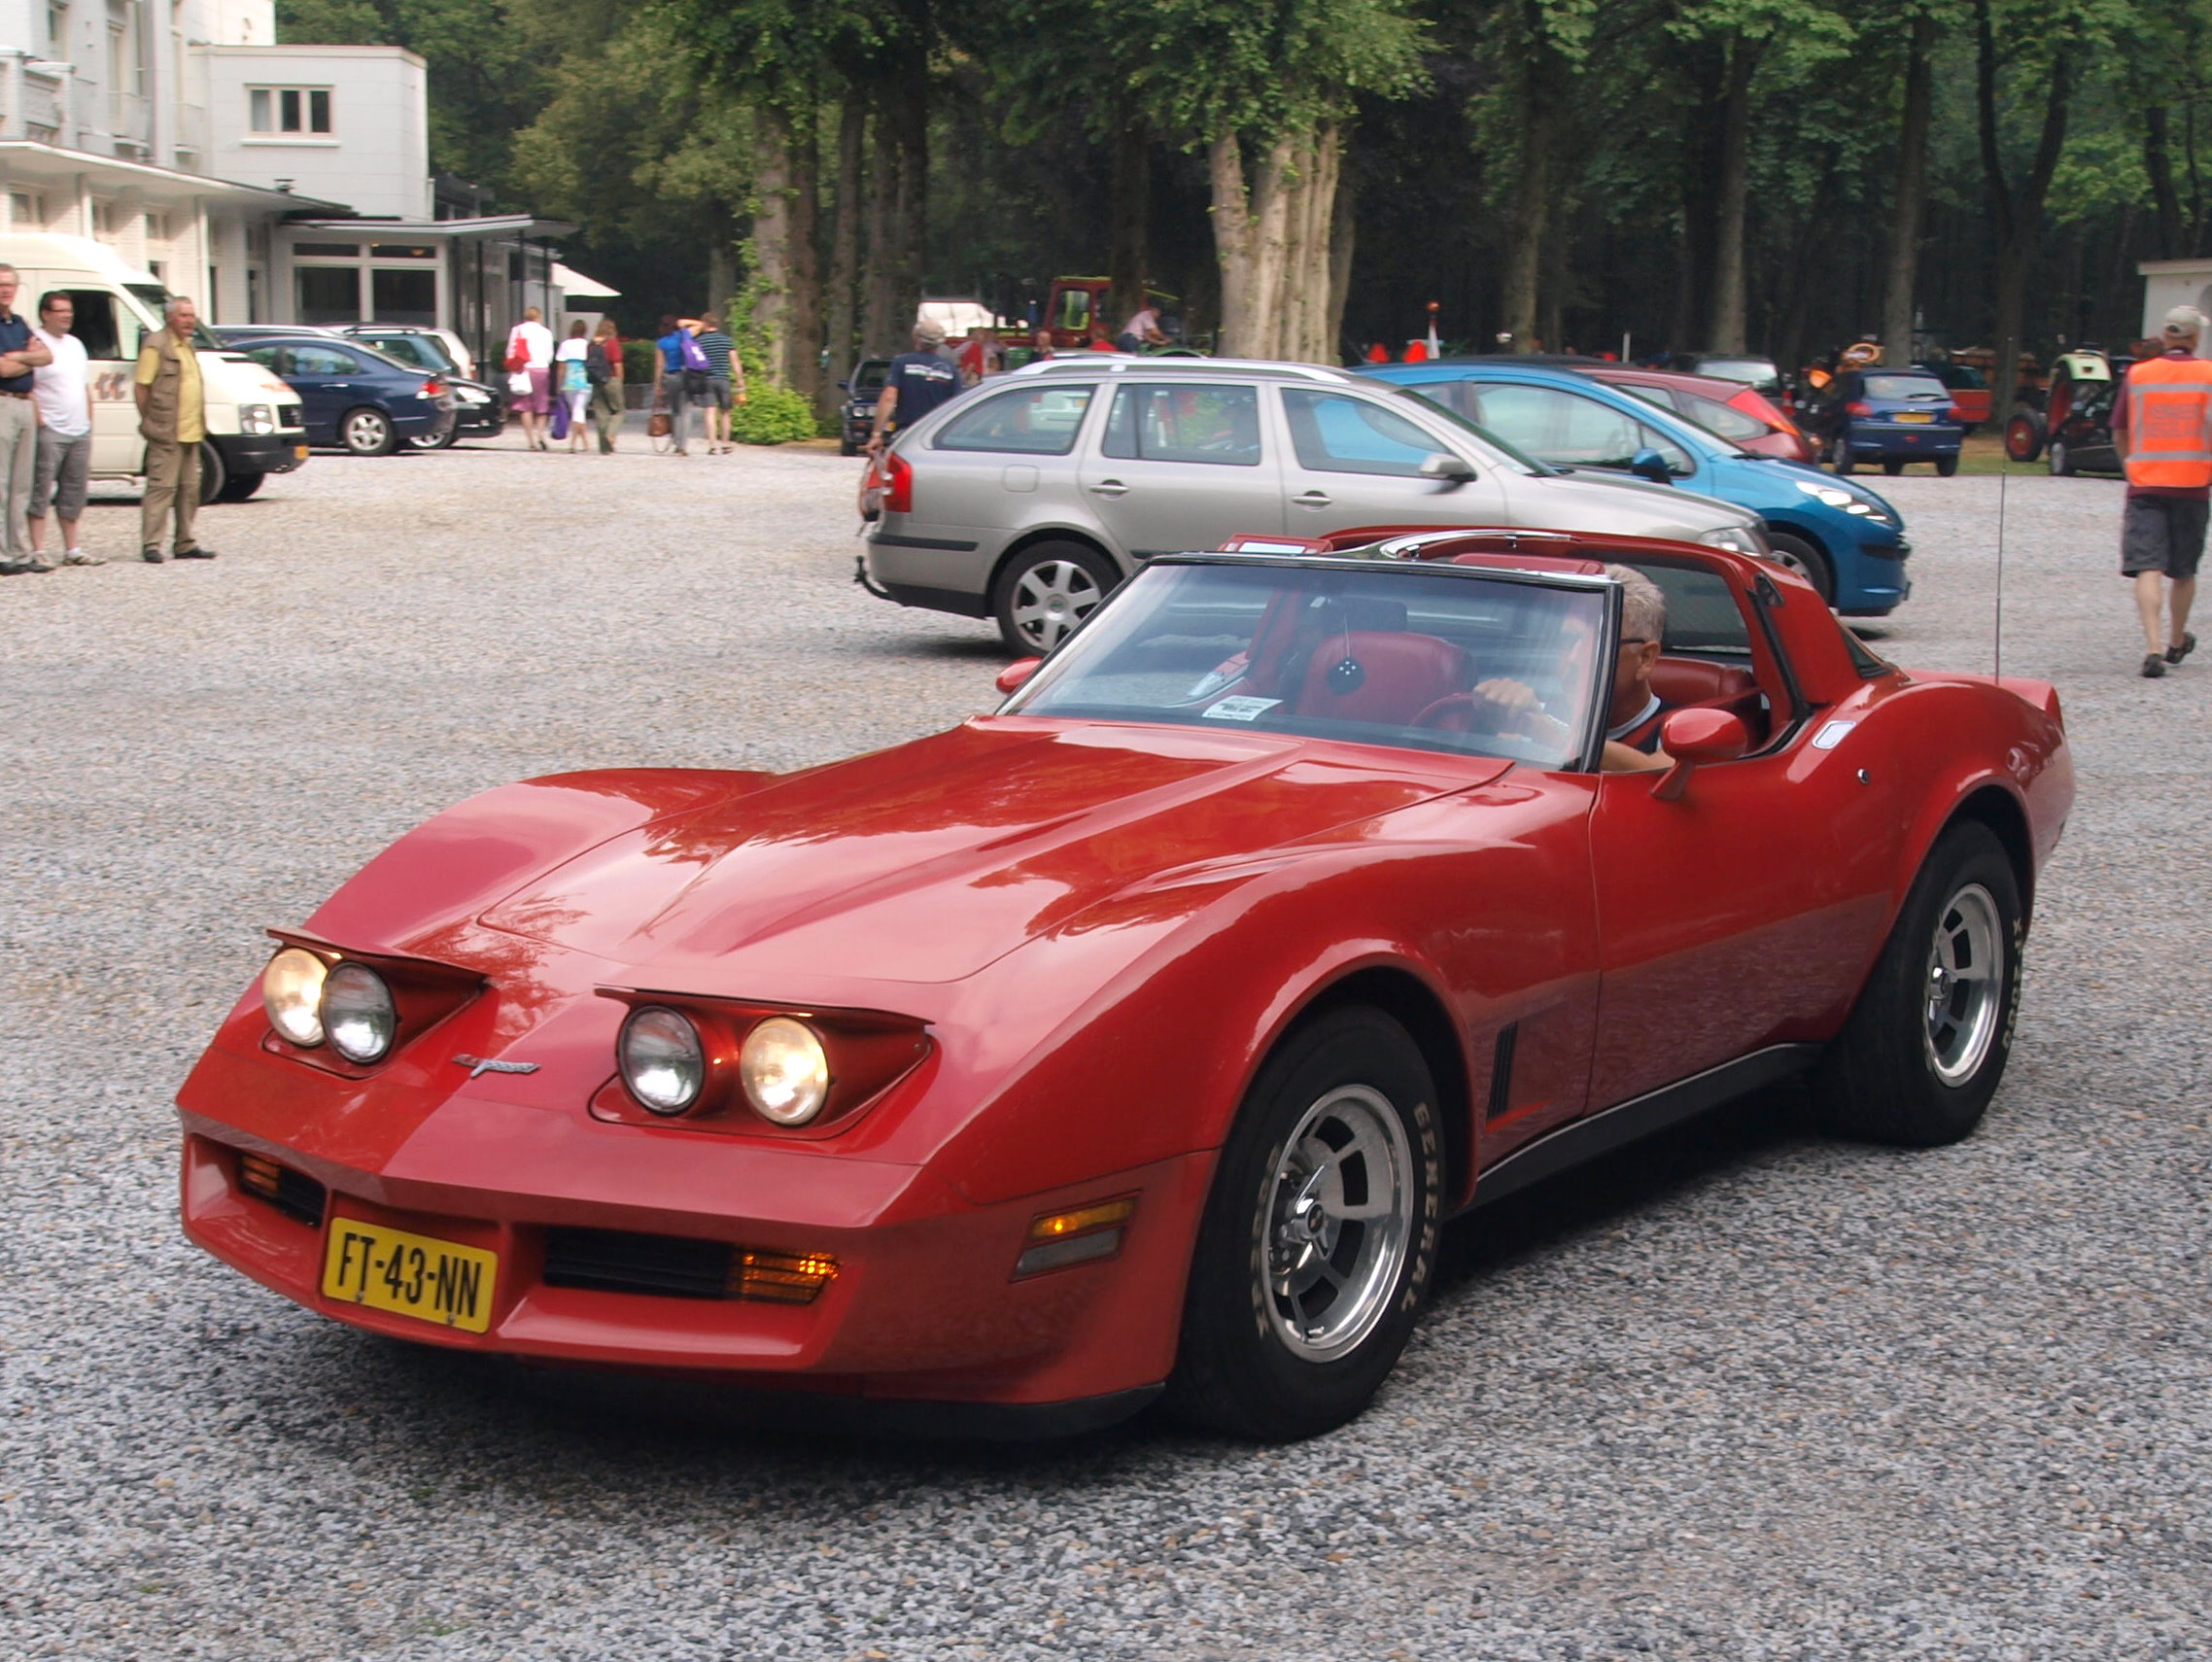 corvette history A brief history of corvette cars according to their generations, dating back from the 1950s to the corvettes seen on the road today.